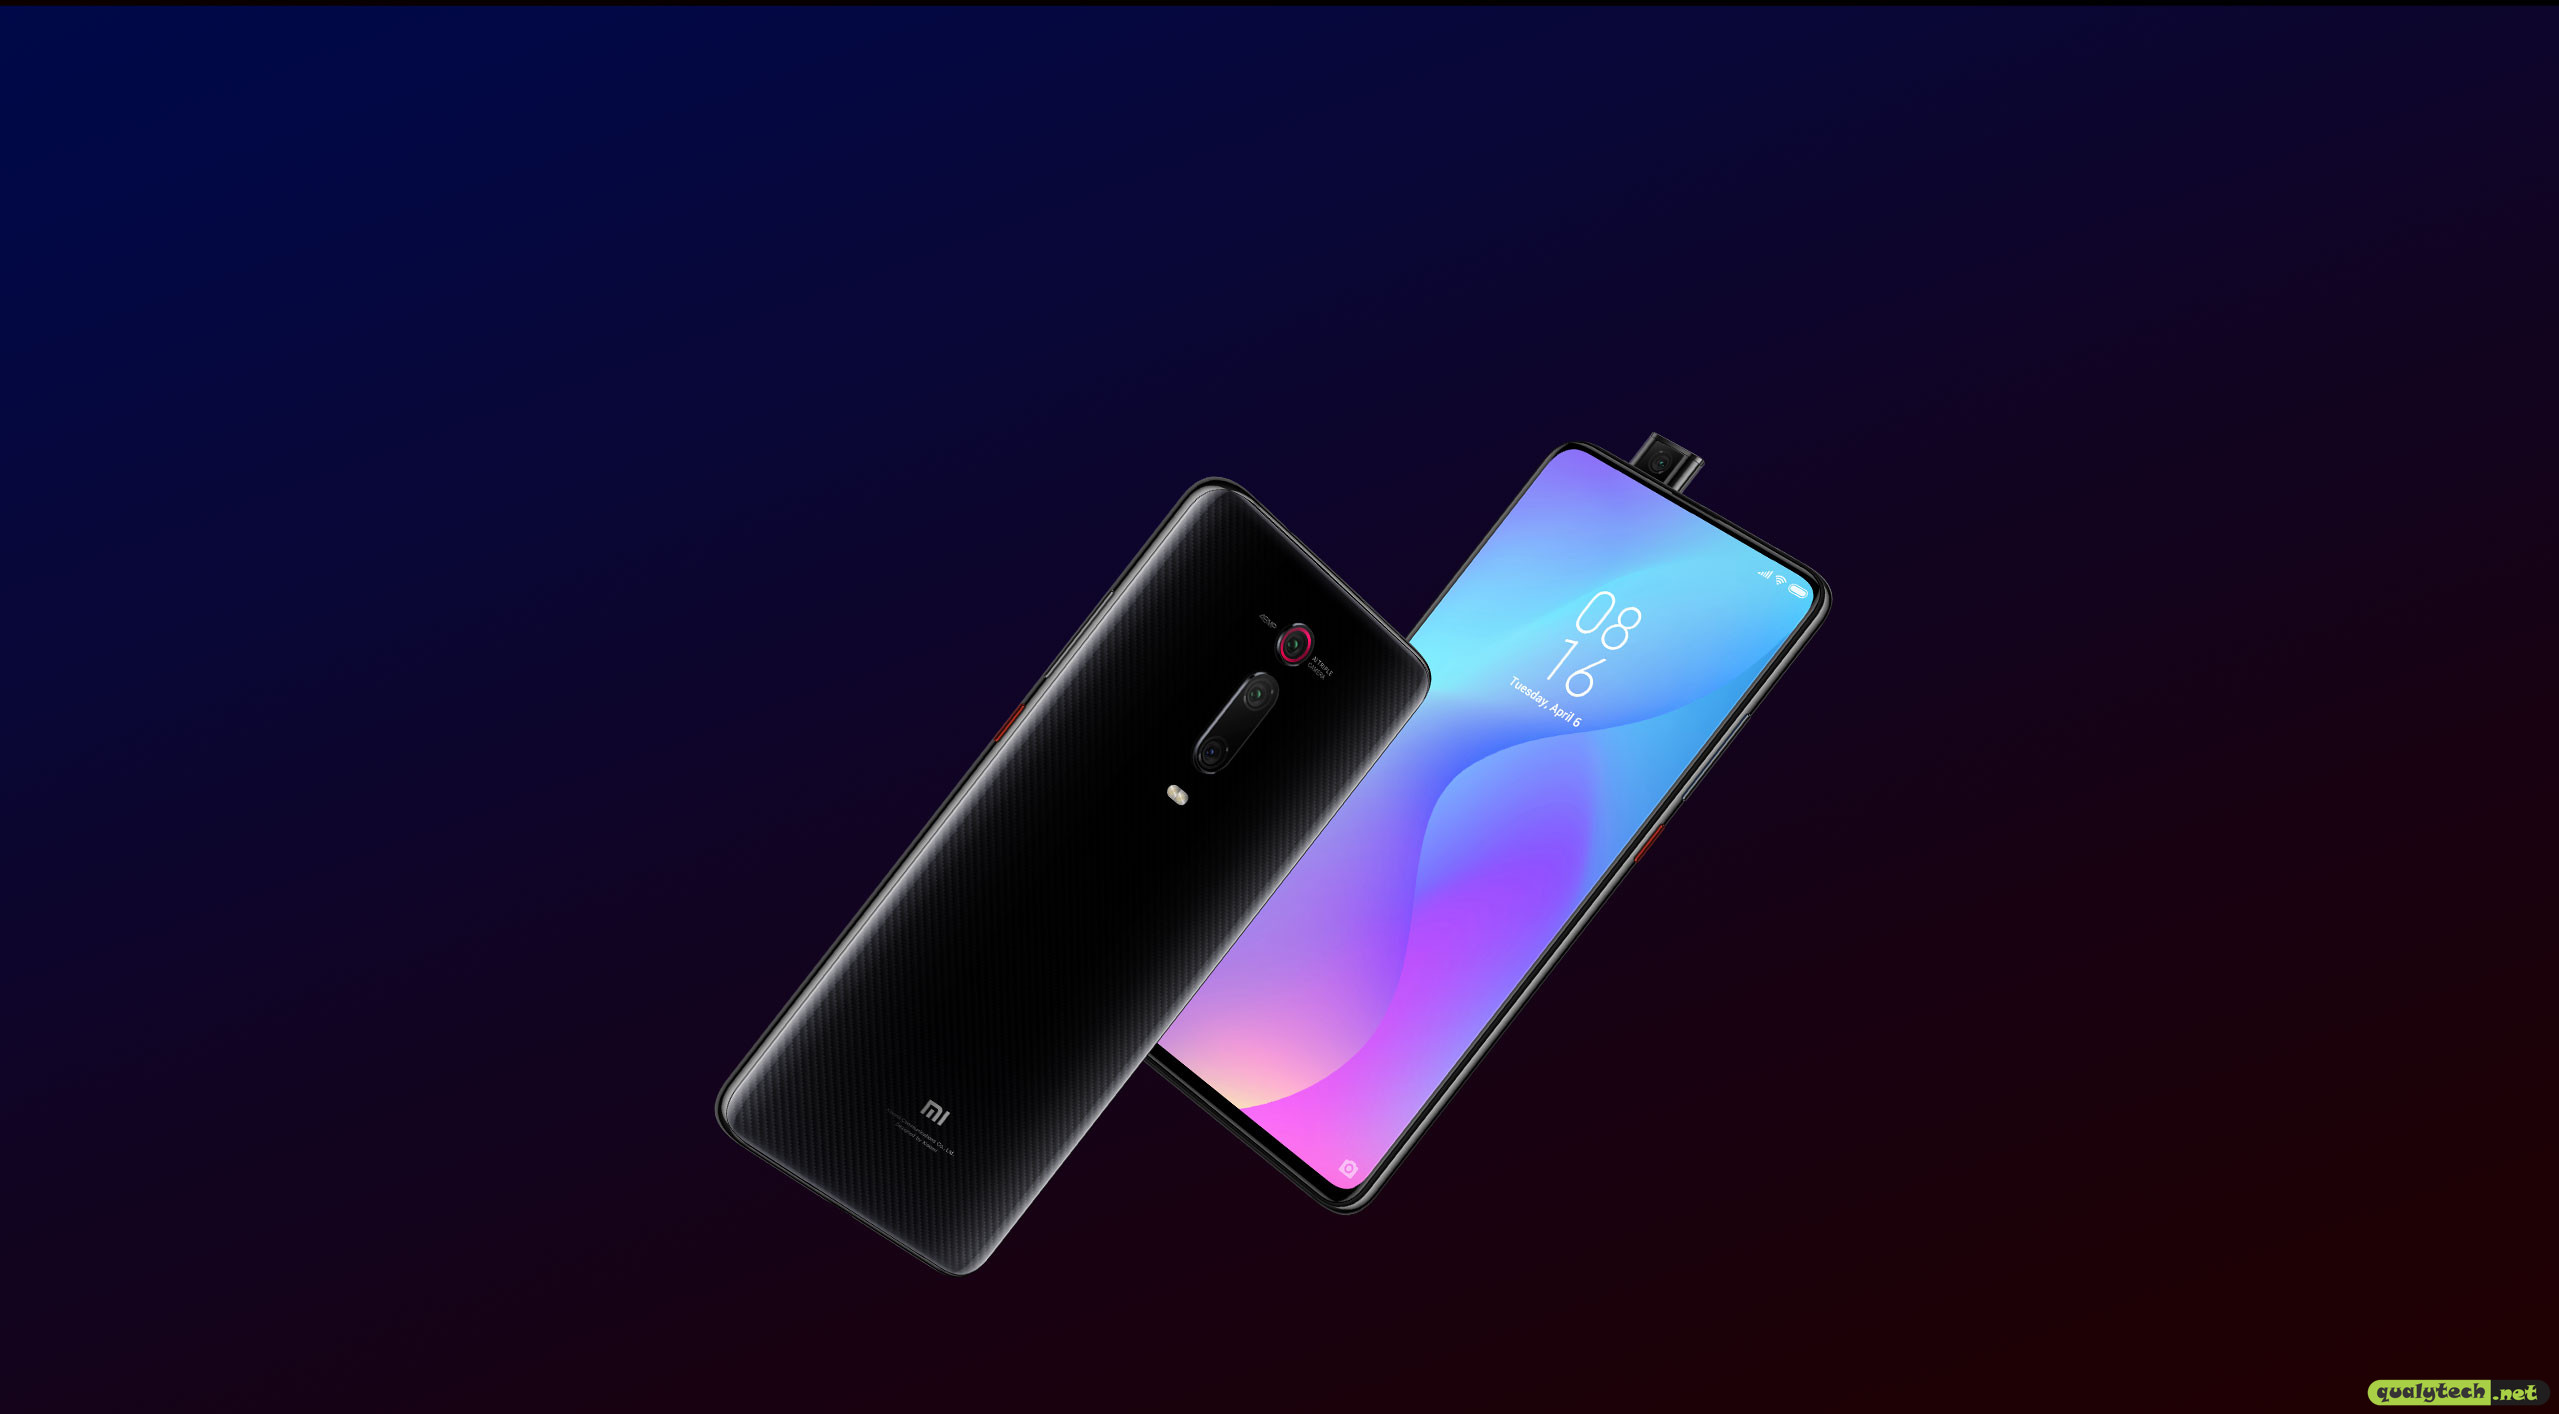 Xiaomi Mi 9T Pro specs and price